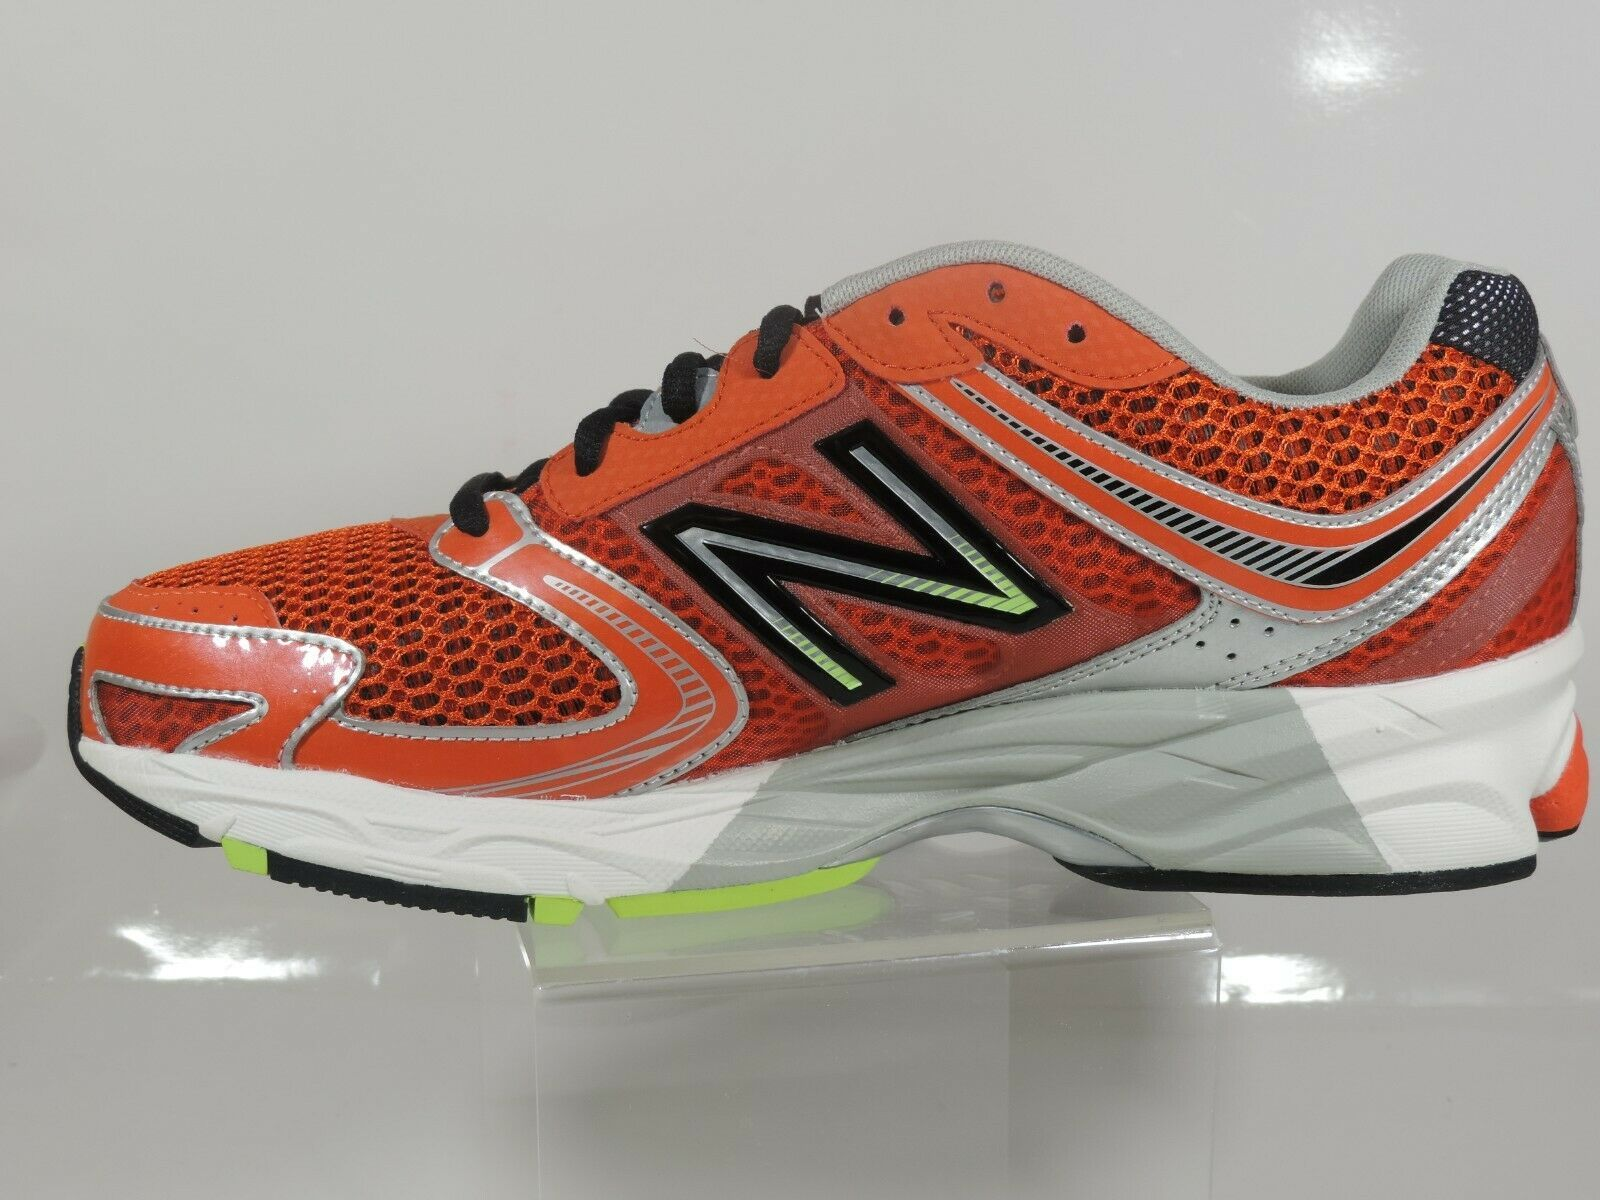 New Balance Men's Shoes M770CT3 Athletic Running Sneakers Red Black Mesh image 2